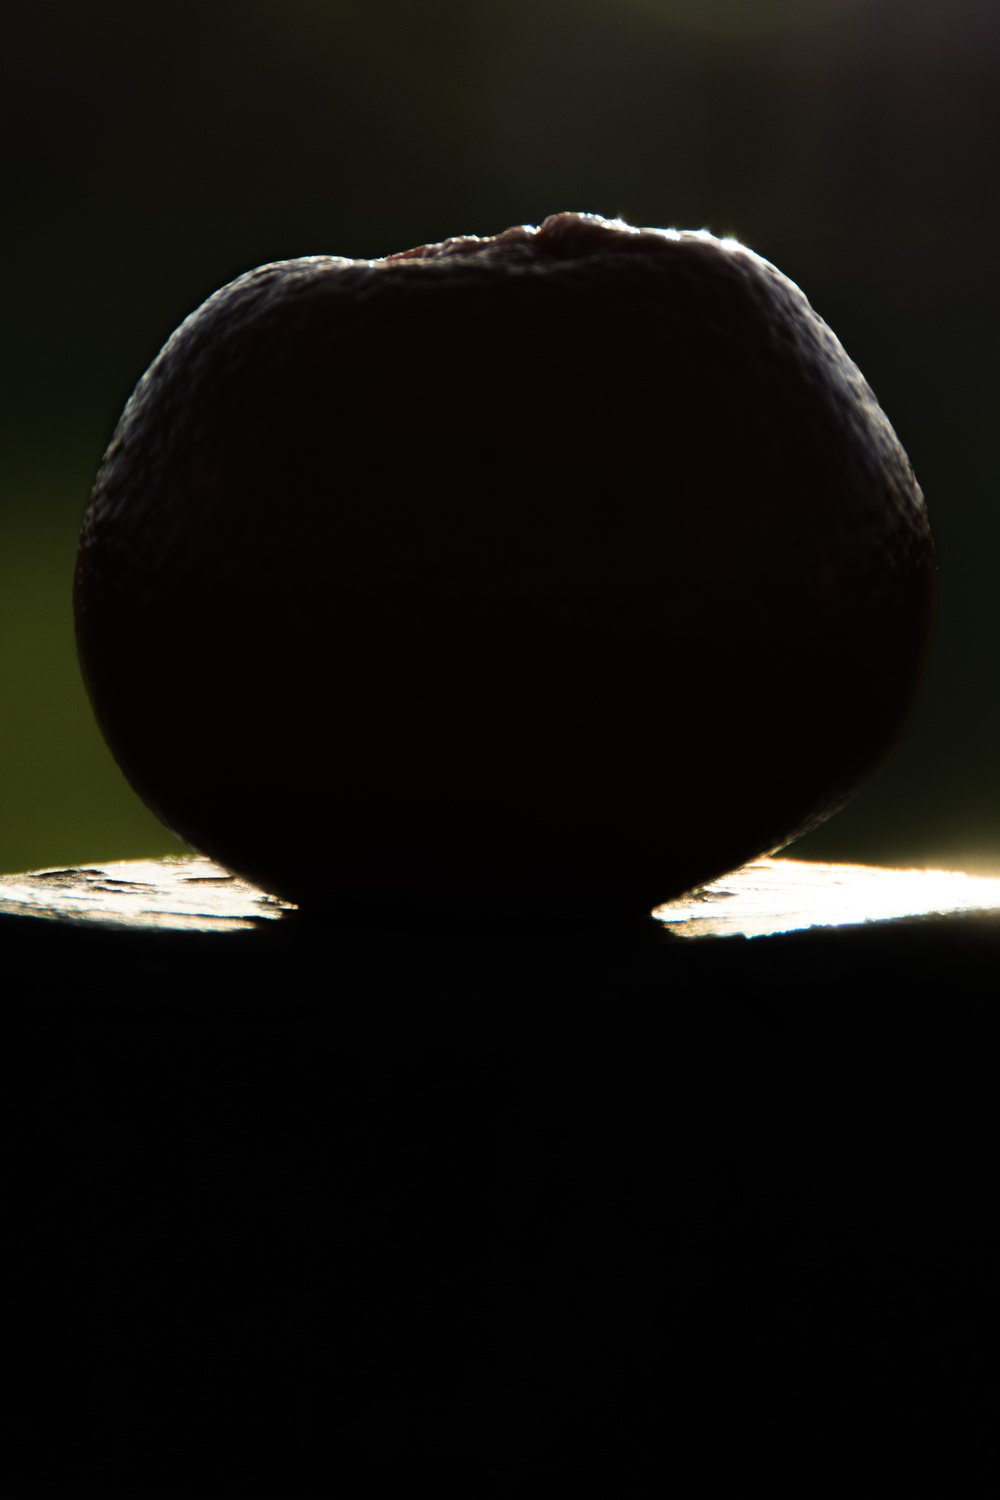 This second image, to demonstrate shape, was taken outdoors against a low morning sun. The sun was slightly higher in the sky than I would have liked so the top of the fruit is lit a little more than the lower part. This can also be seen by how the pole that is was positioned on has a lot of reflection from its top.